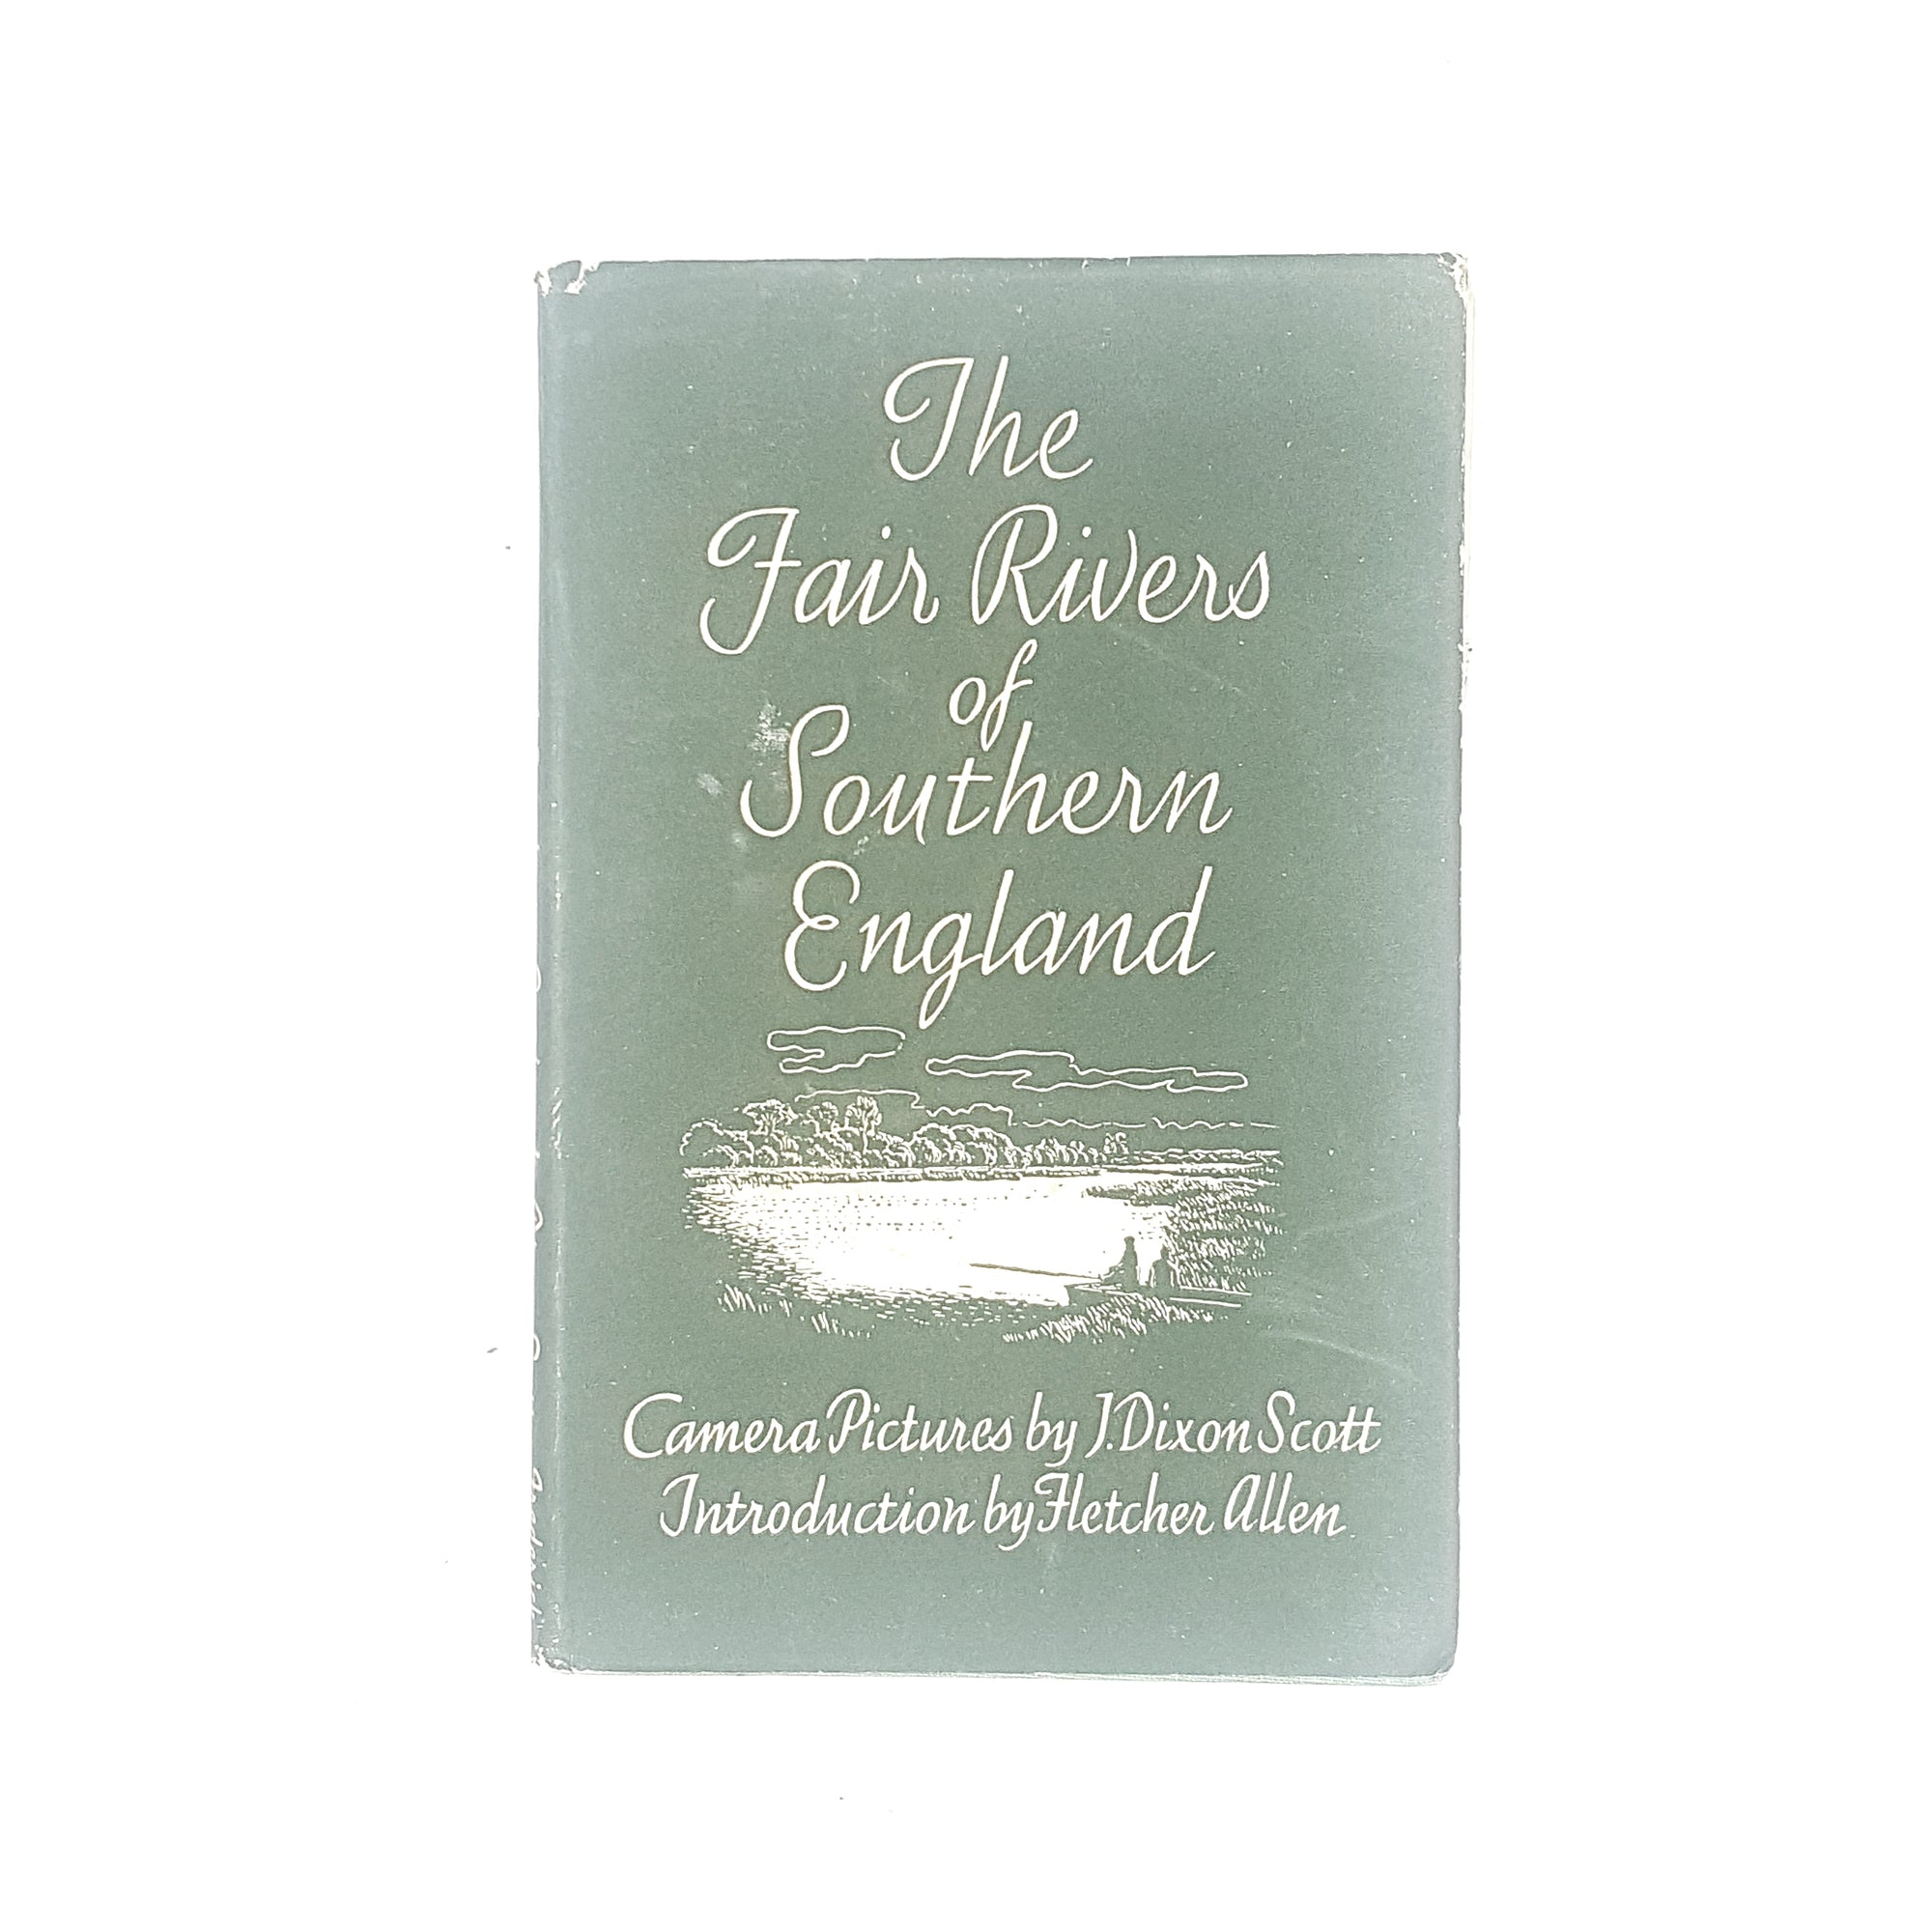 The Fair Rivers of Southern England by J Dixon Scott 1946